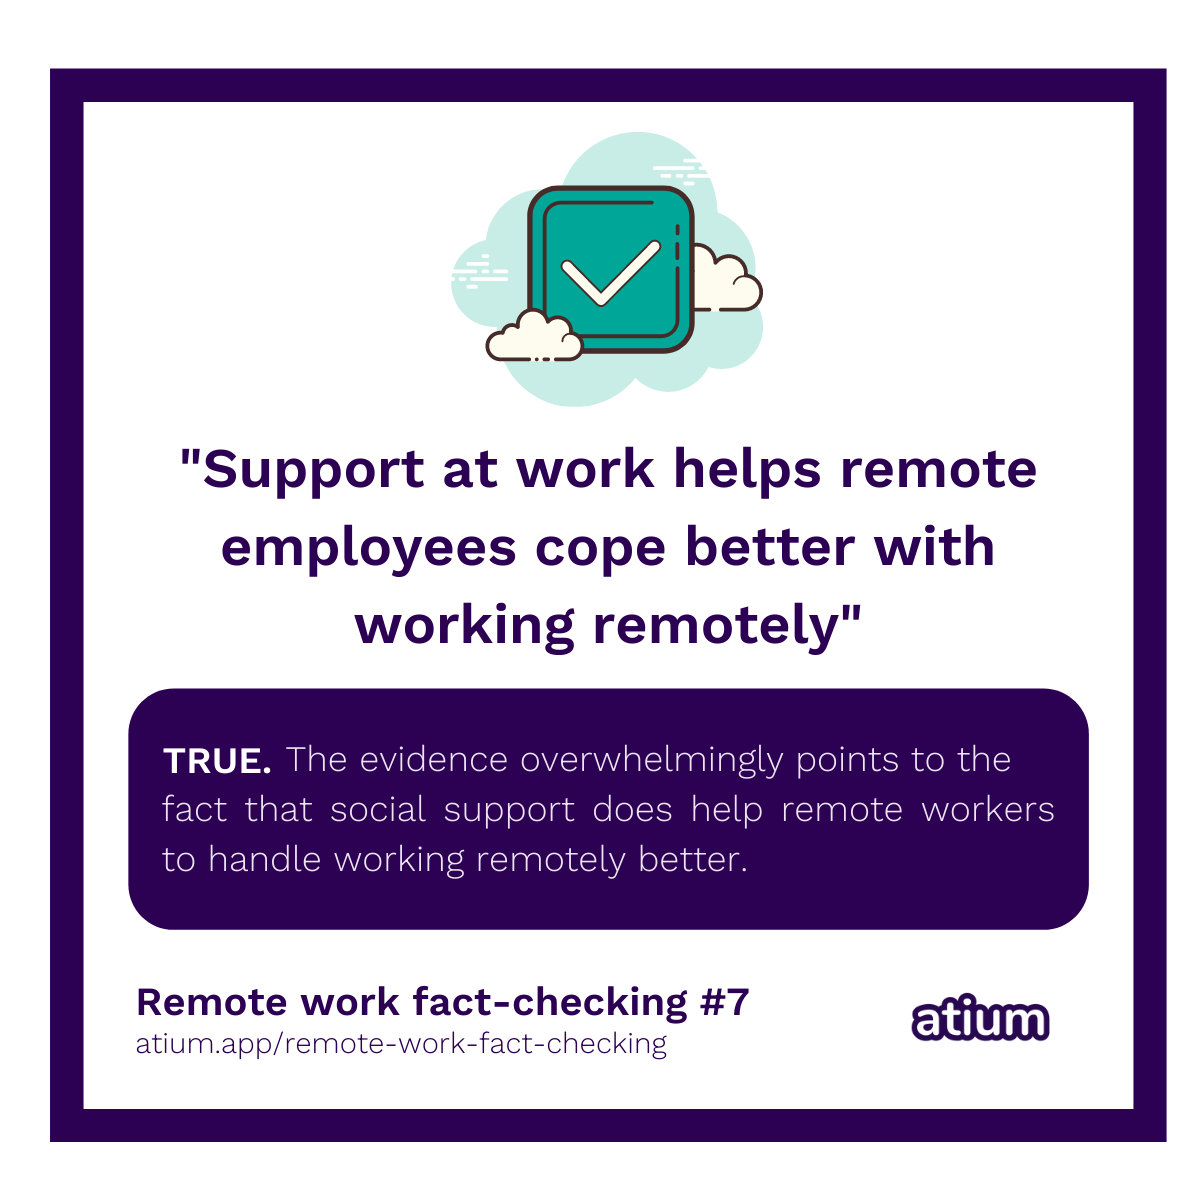 Support at work helps remote employees cope better with working remotely